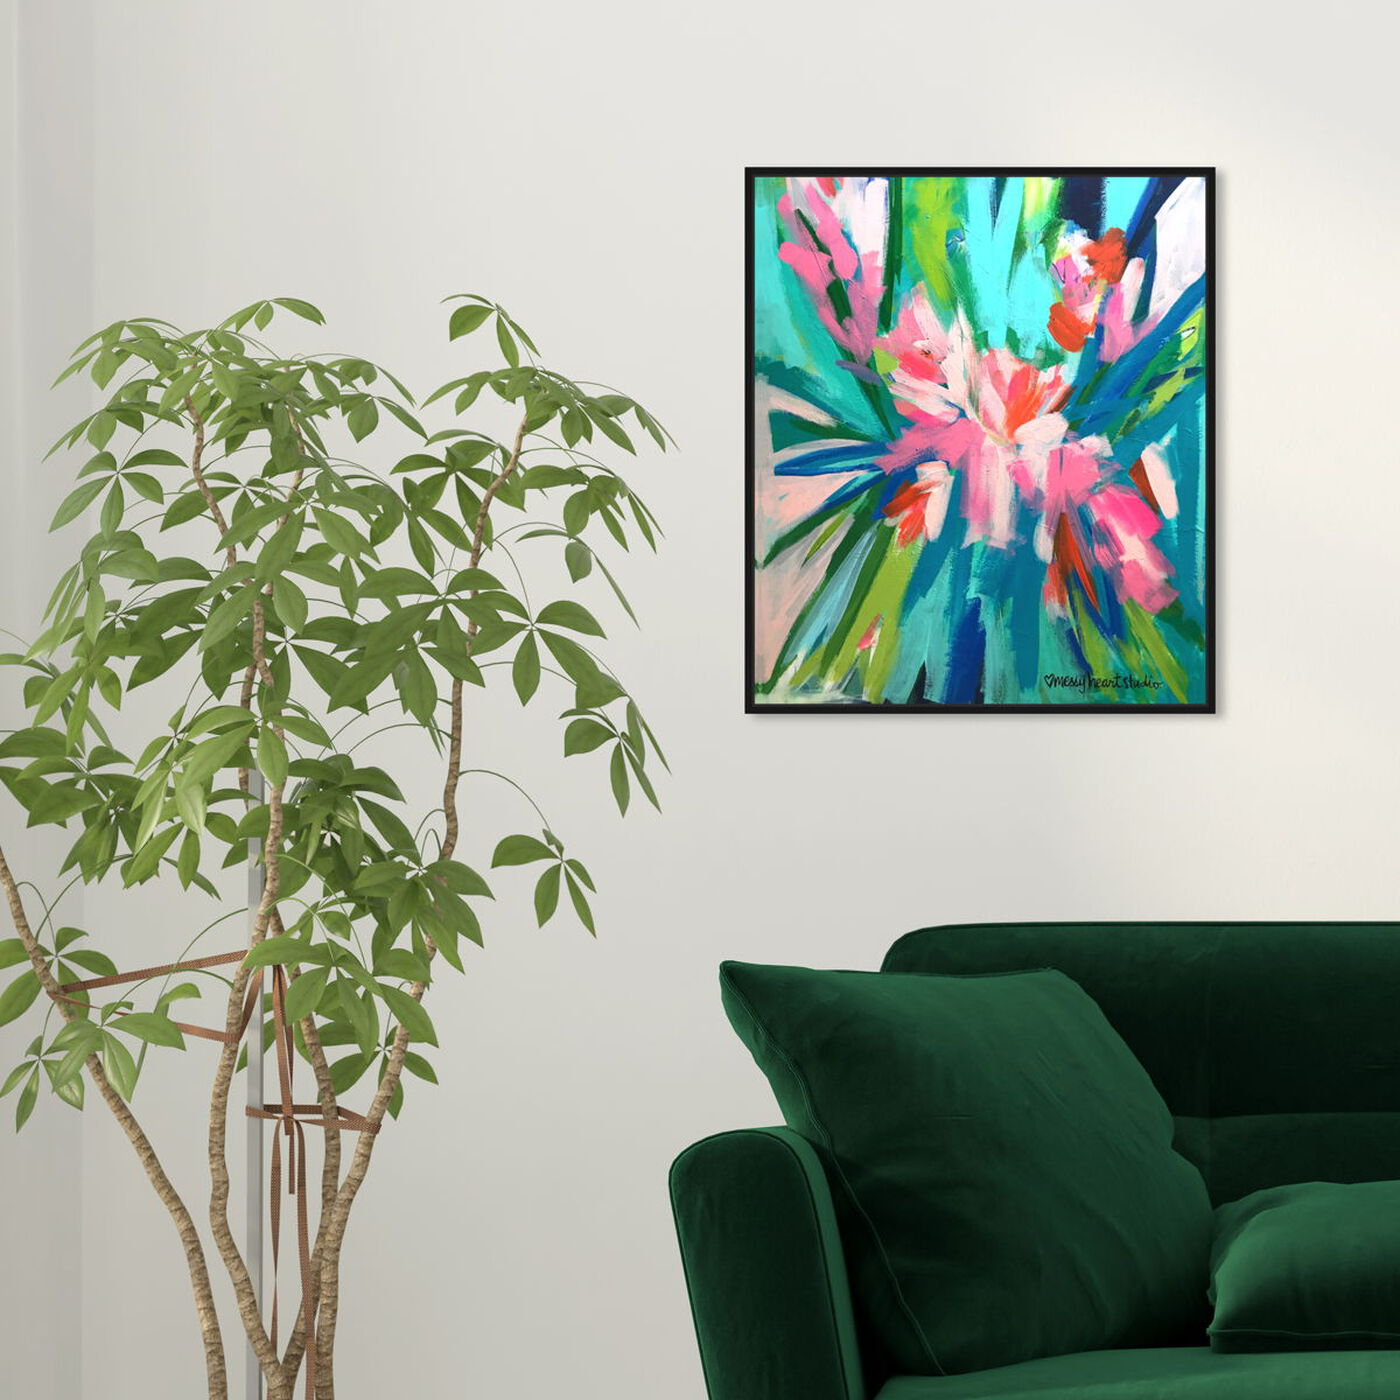 Hanging view of Lourdes Wackes -Garden Party II featuring abstract and flowers art.